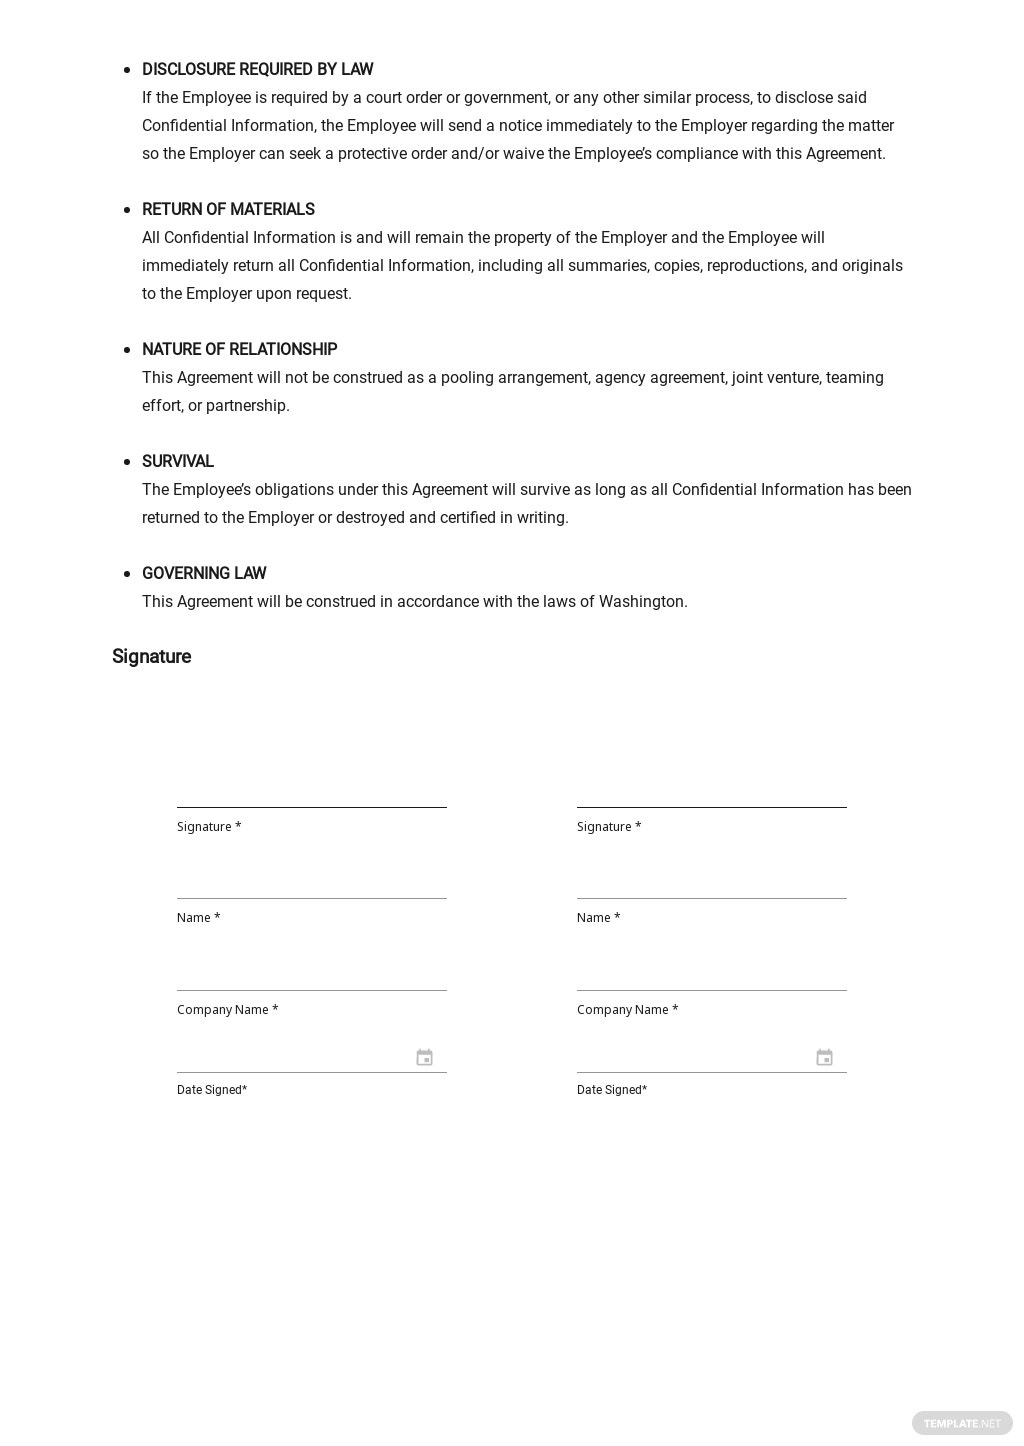 Sample Employee Confidentiality Agreement Template 2.jpe